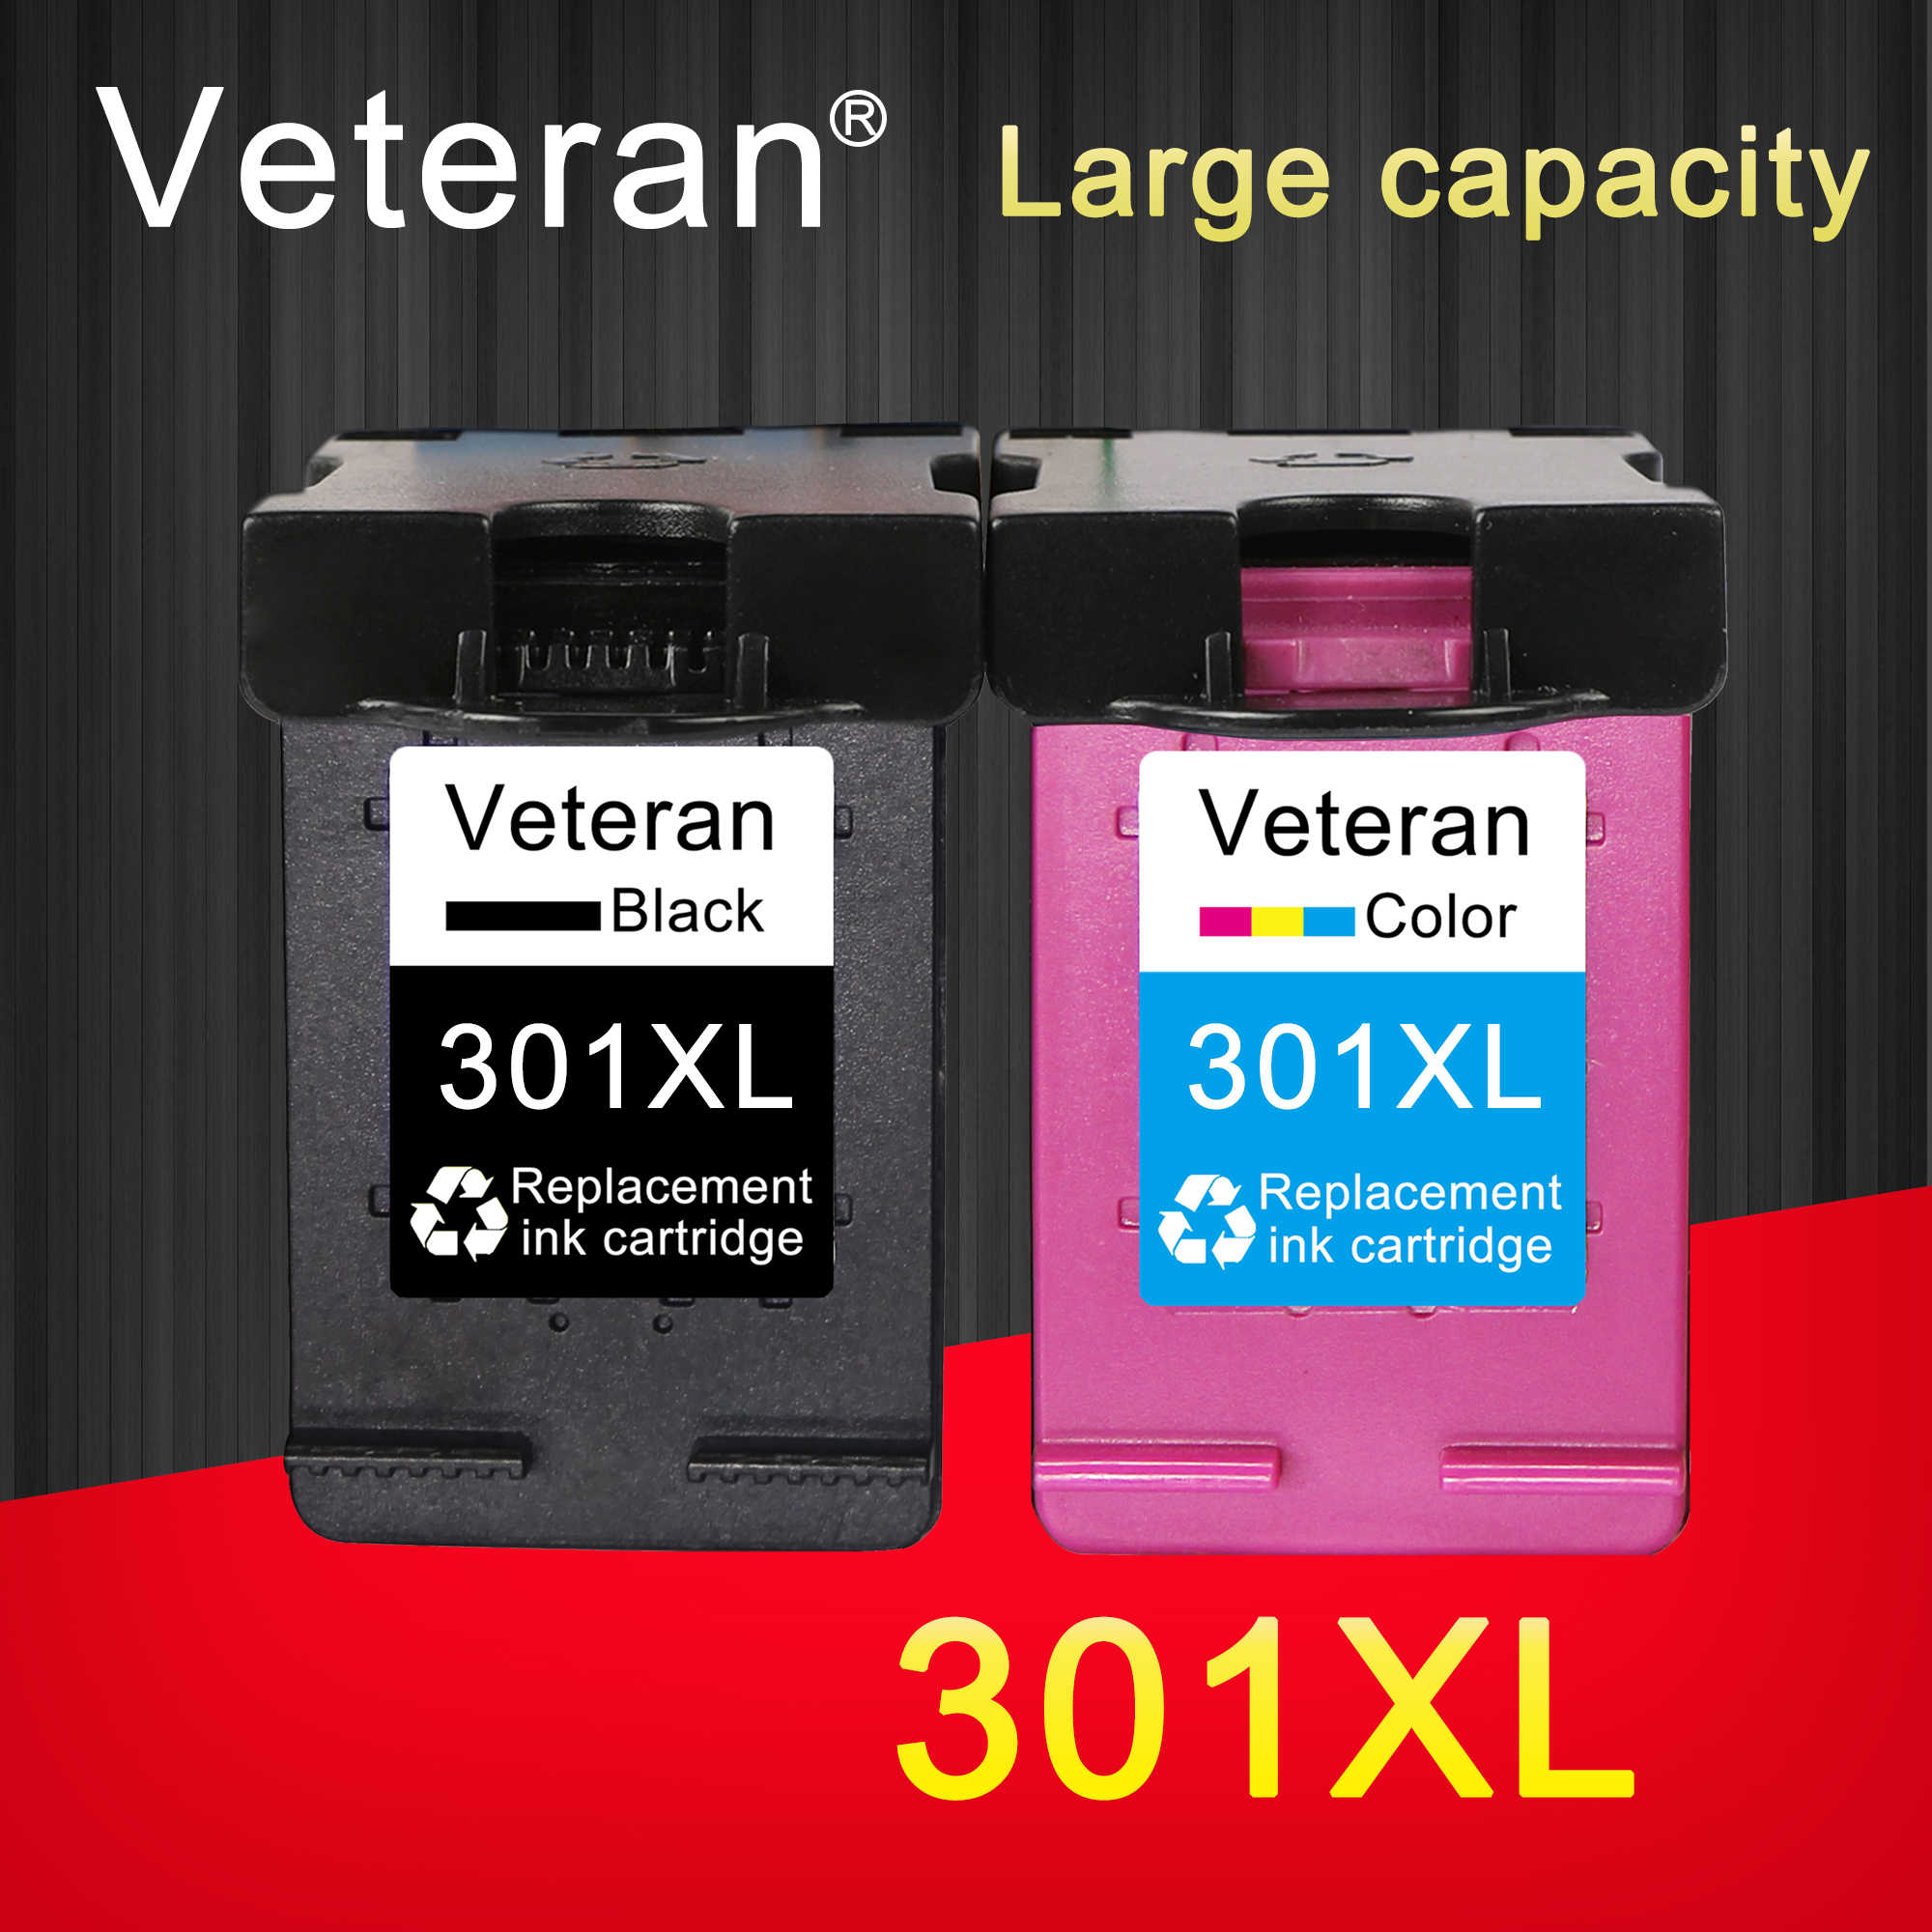 Veteran 301XL Pengganti HP 301XL HP 301 Tinta Cartridge HP Deskjet 2050 1000 1050 2510 3000 3054 Iri 4500 4502 Printer